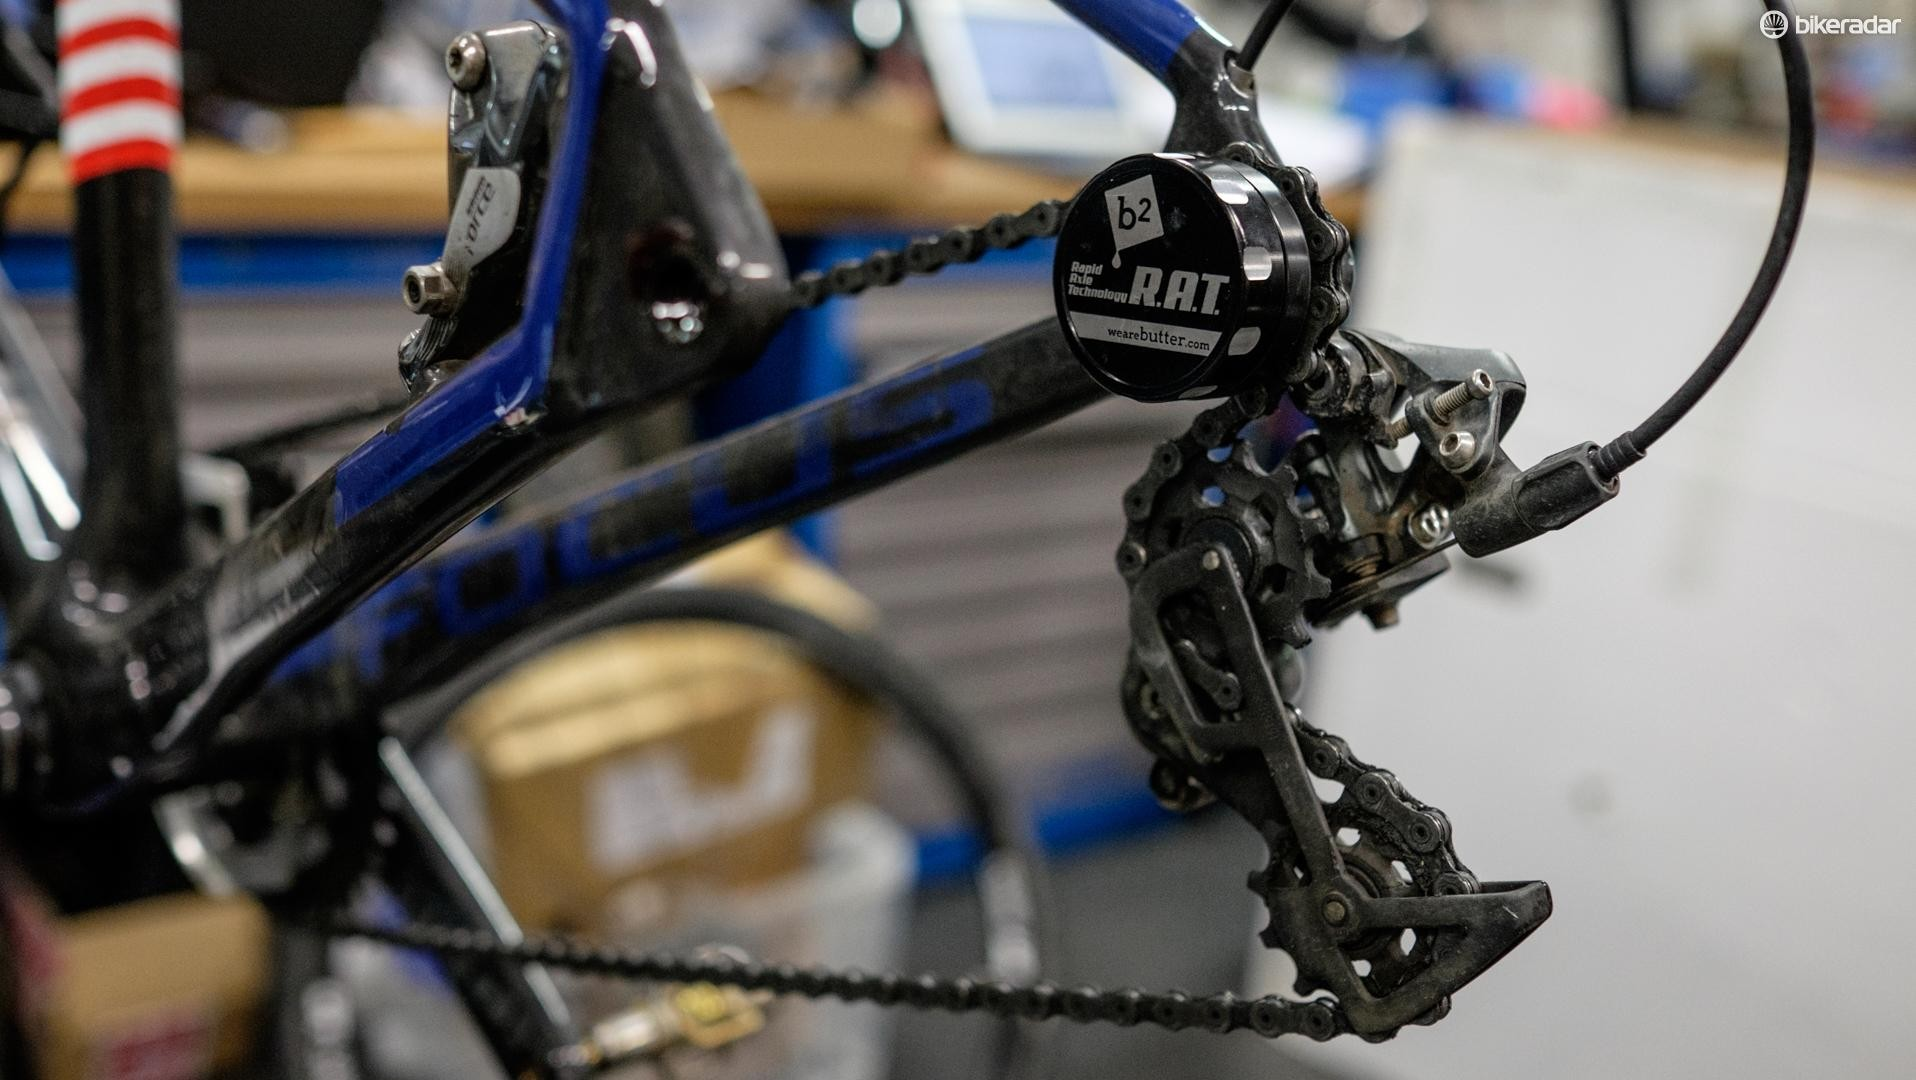 Butter's RAT-specific chain keeper is the first for Focus' proprietary locking system